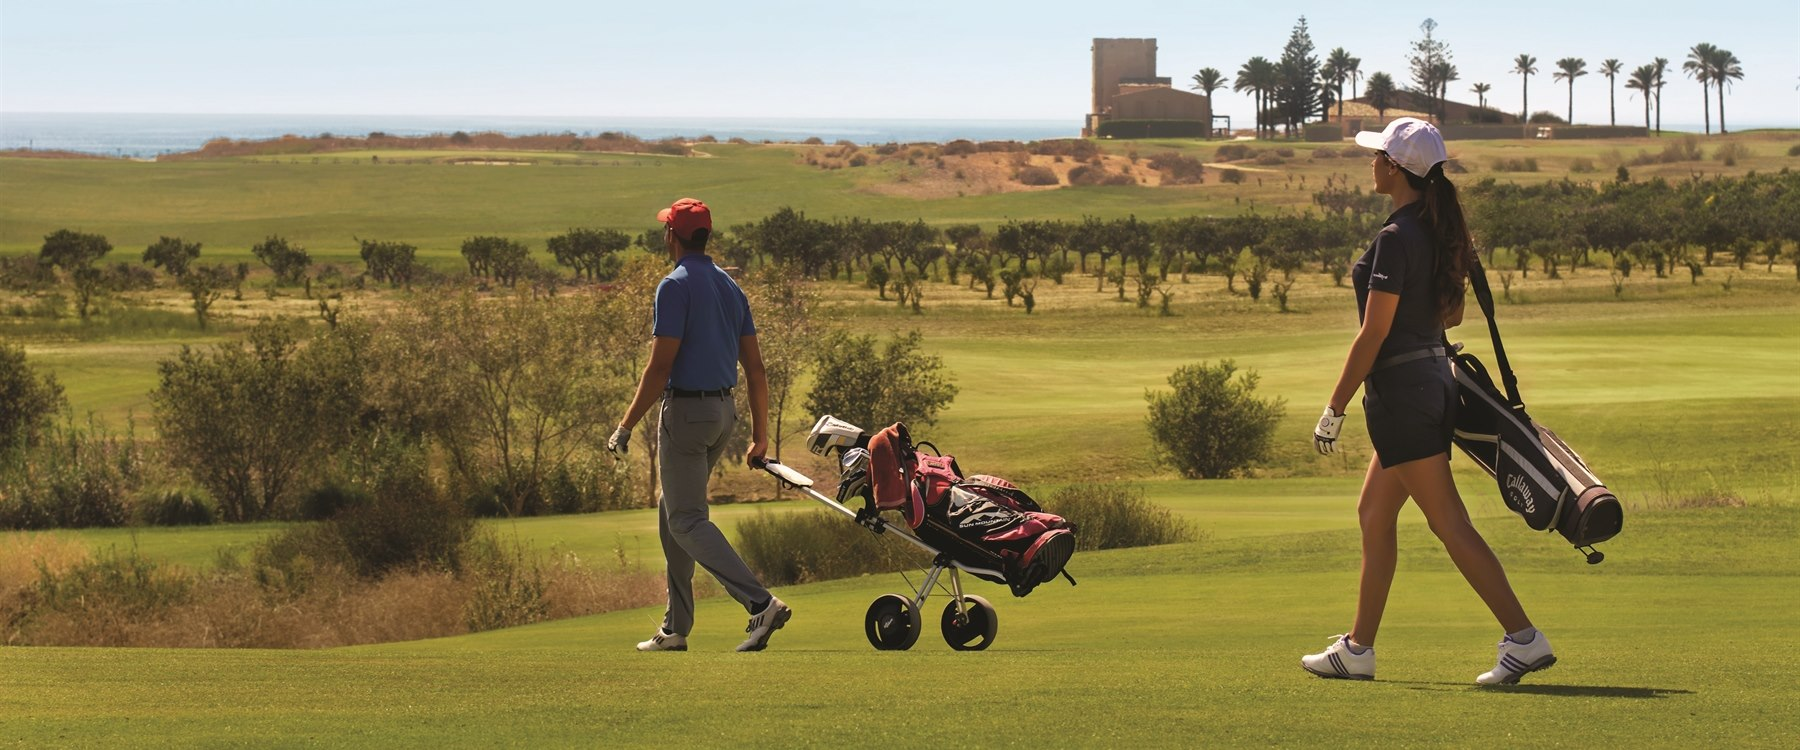 Golf course at Verdura Resort, Sicily